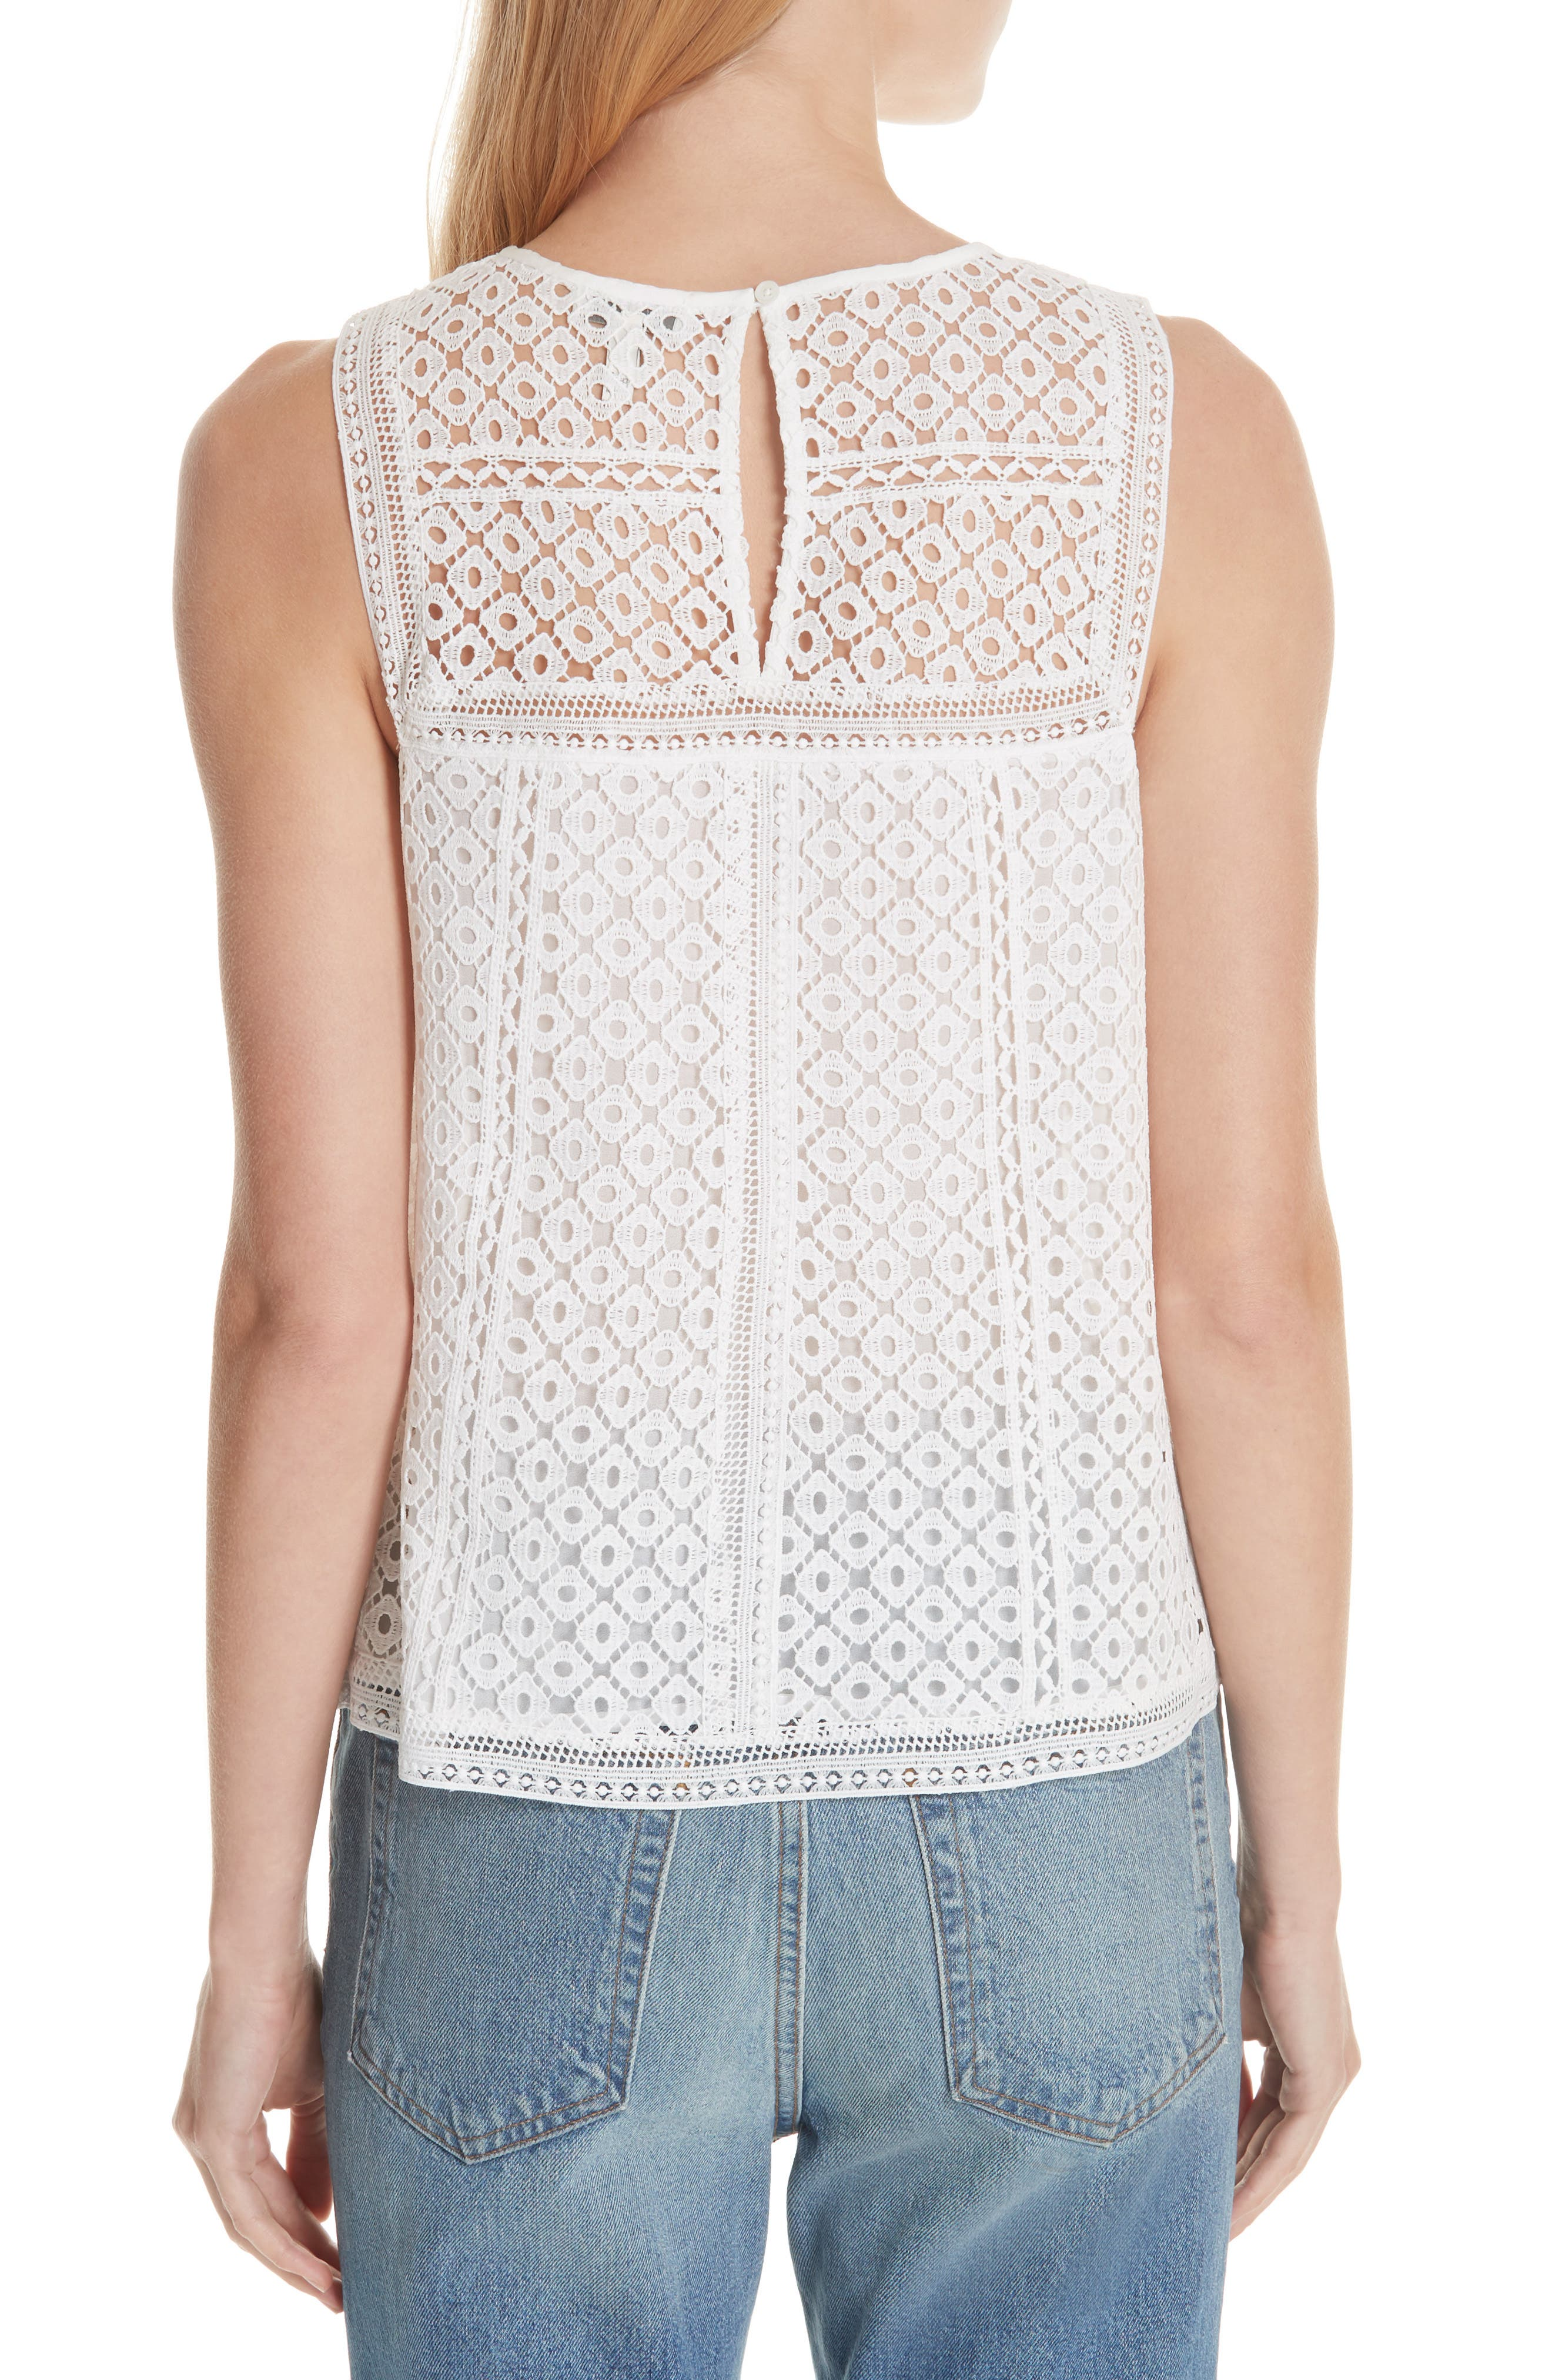 Esrel Lace Top,                             Alternate thumbnail 2, color,                             114